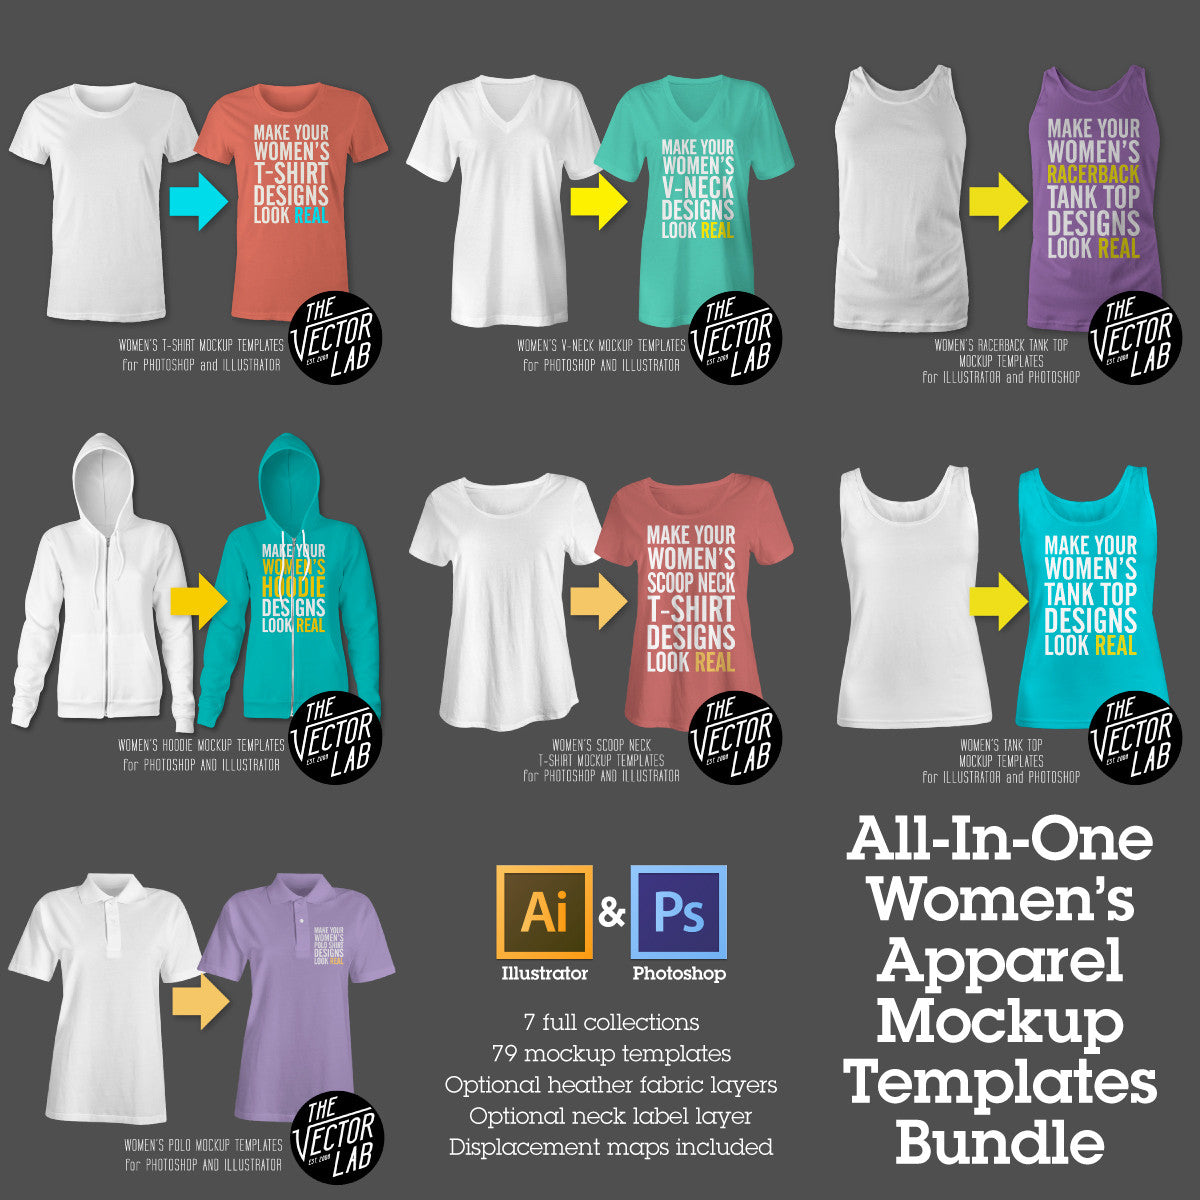 Women's T-Shirt & Apparel Mockup Templates Bundle for Photoshop and Illustrator